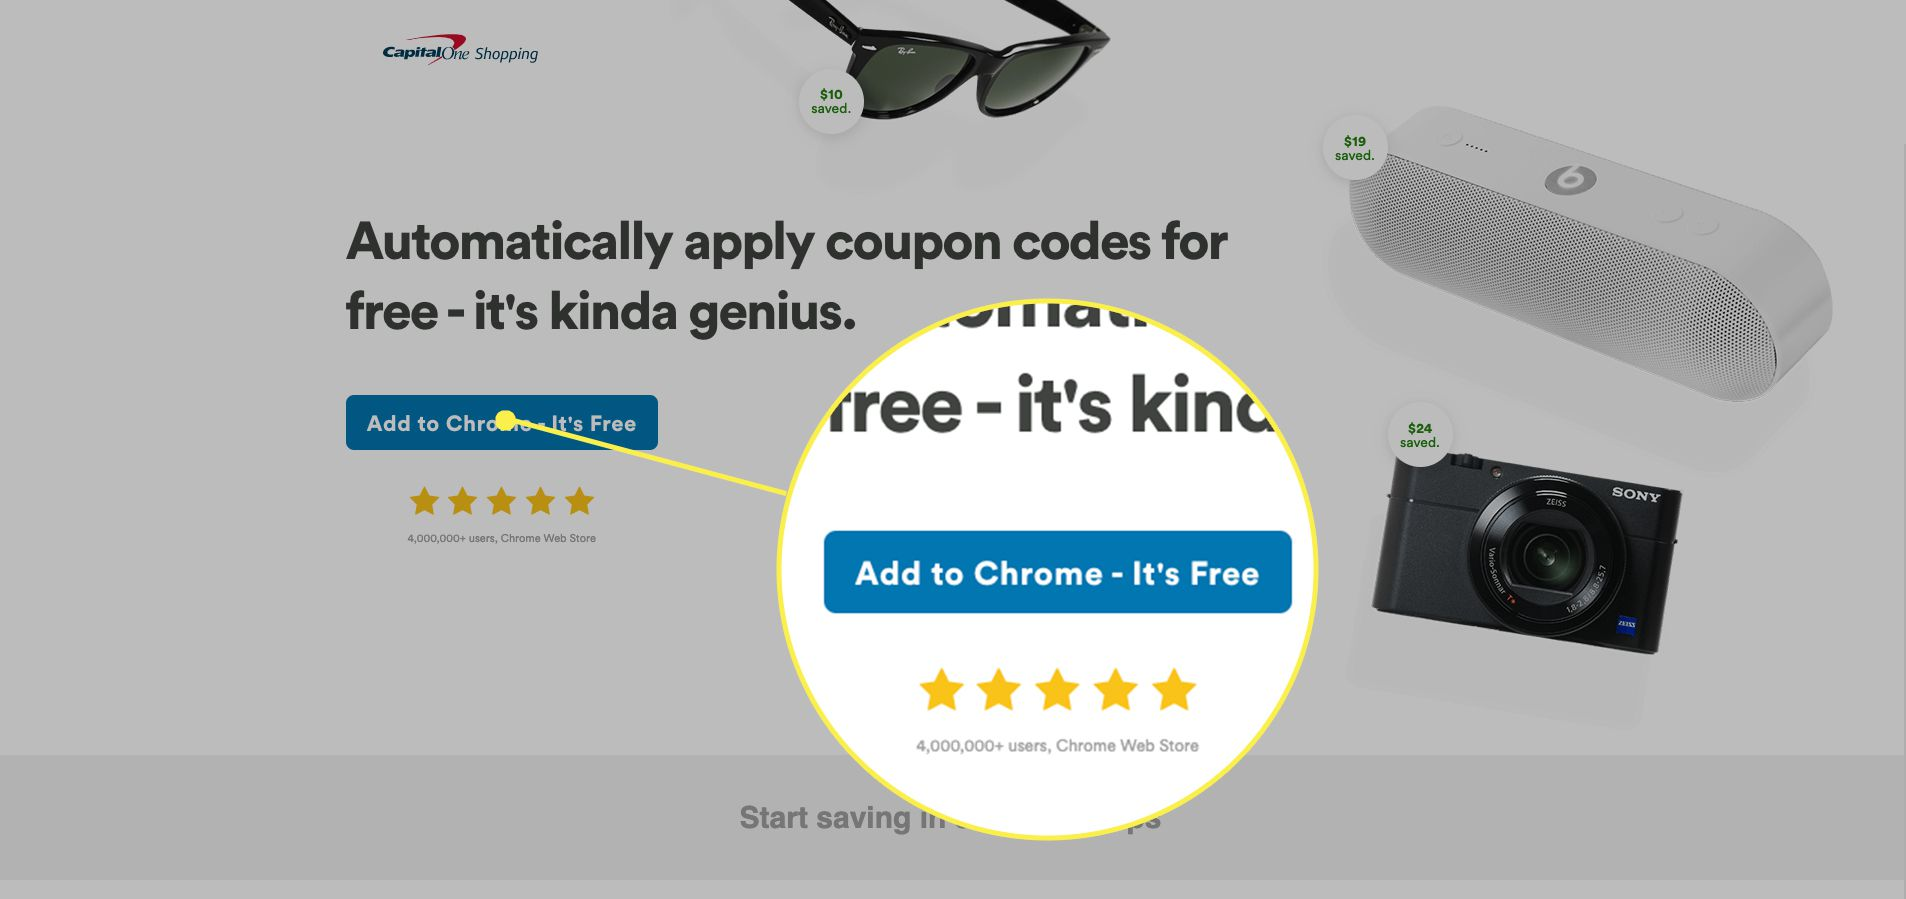 Capital One Shopping add to browser